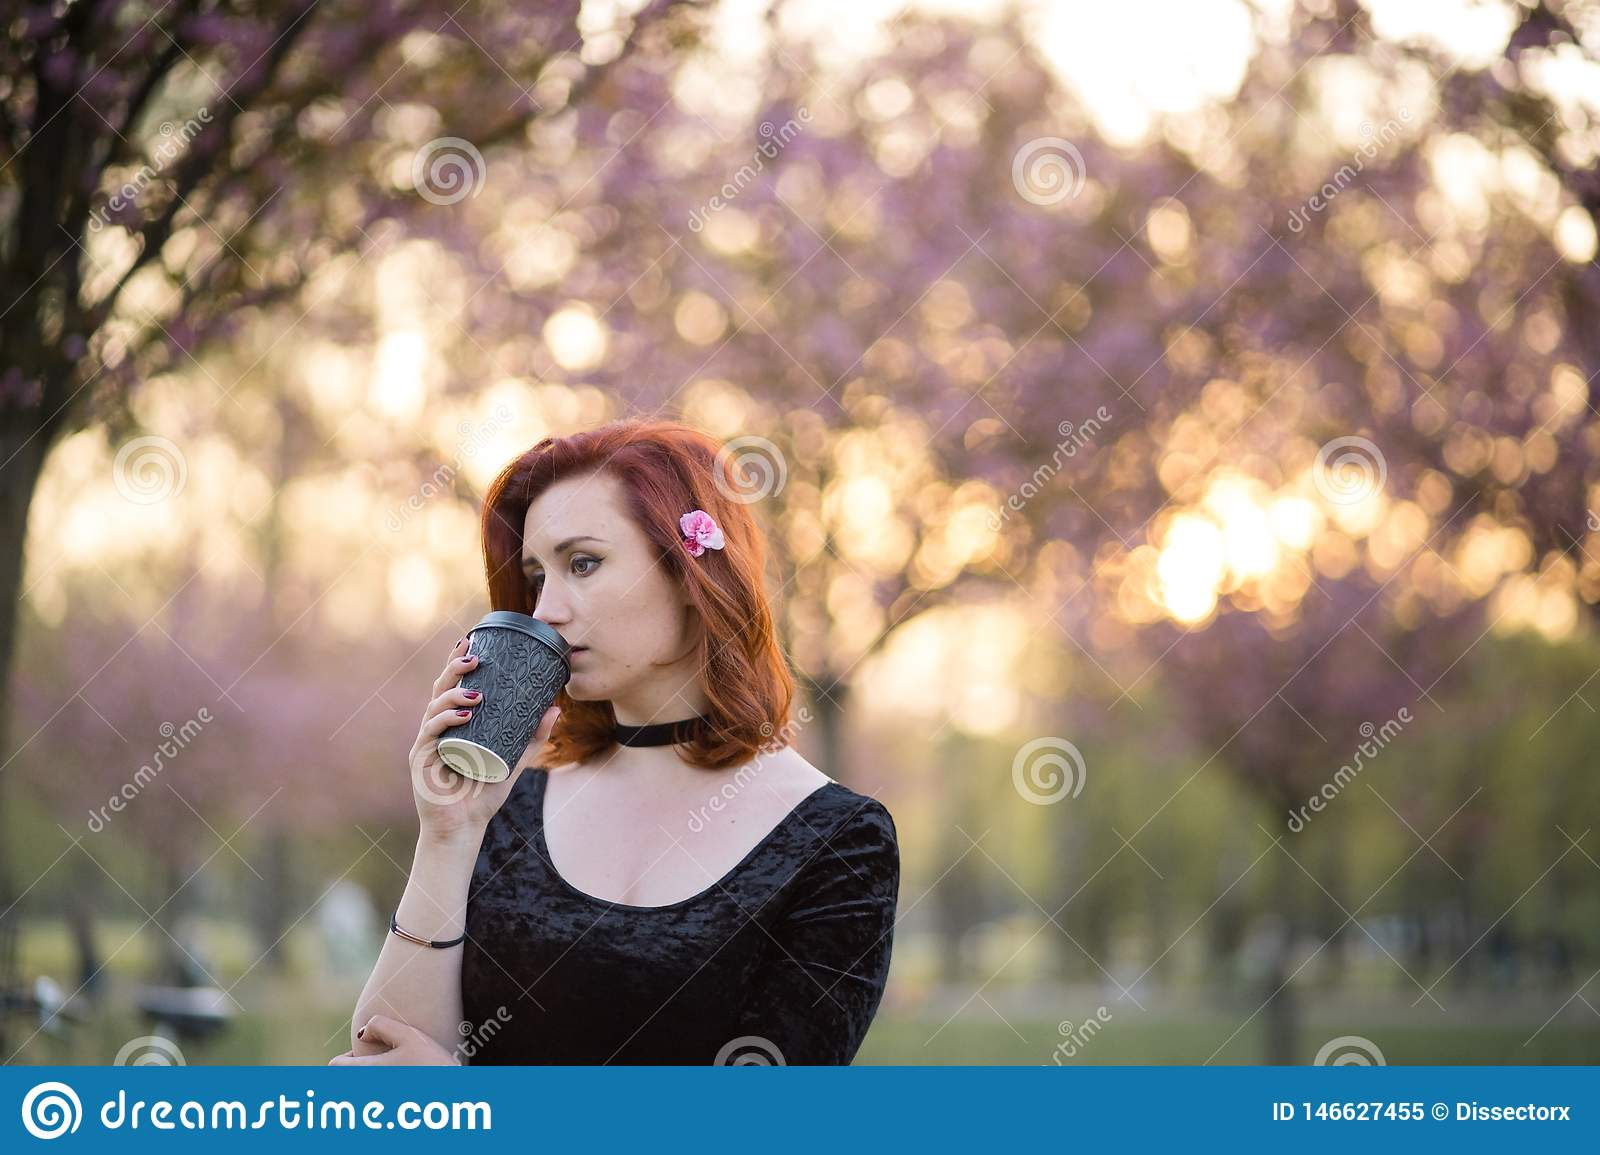 Drinking coffee from paper mug cup - Happy young travel dancer woman enjoying free time in a sakura cherry blossom park